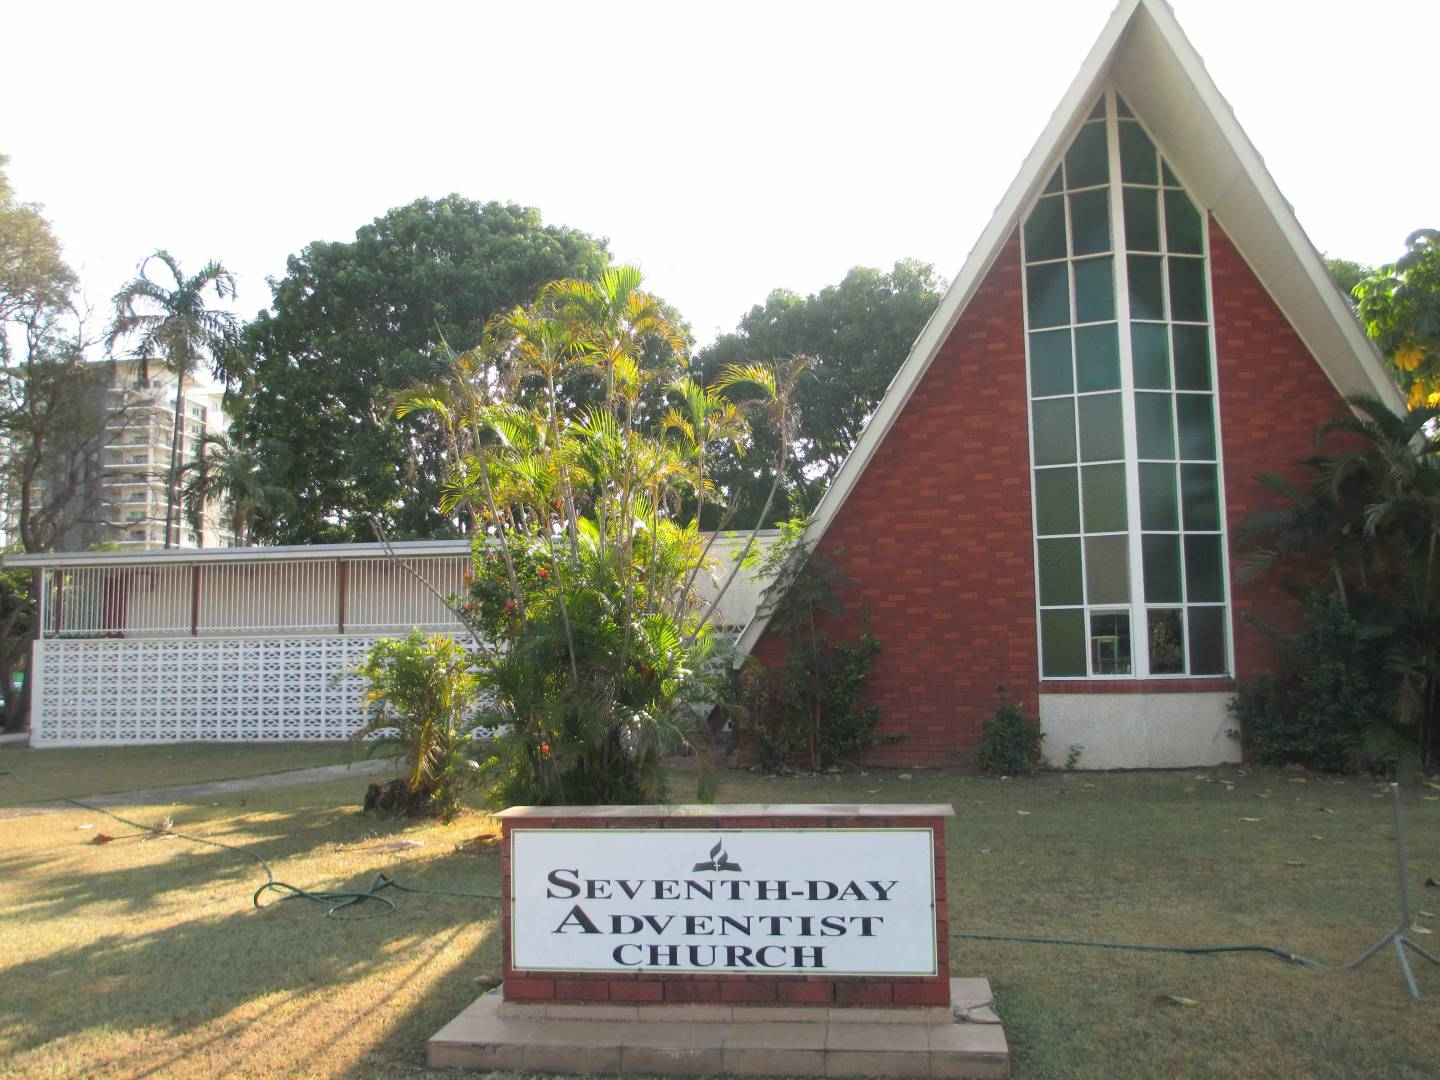 Darwin Seventh-Day Adventist Church